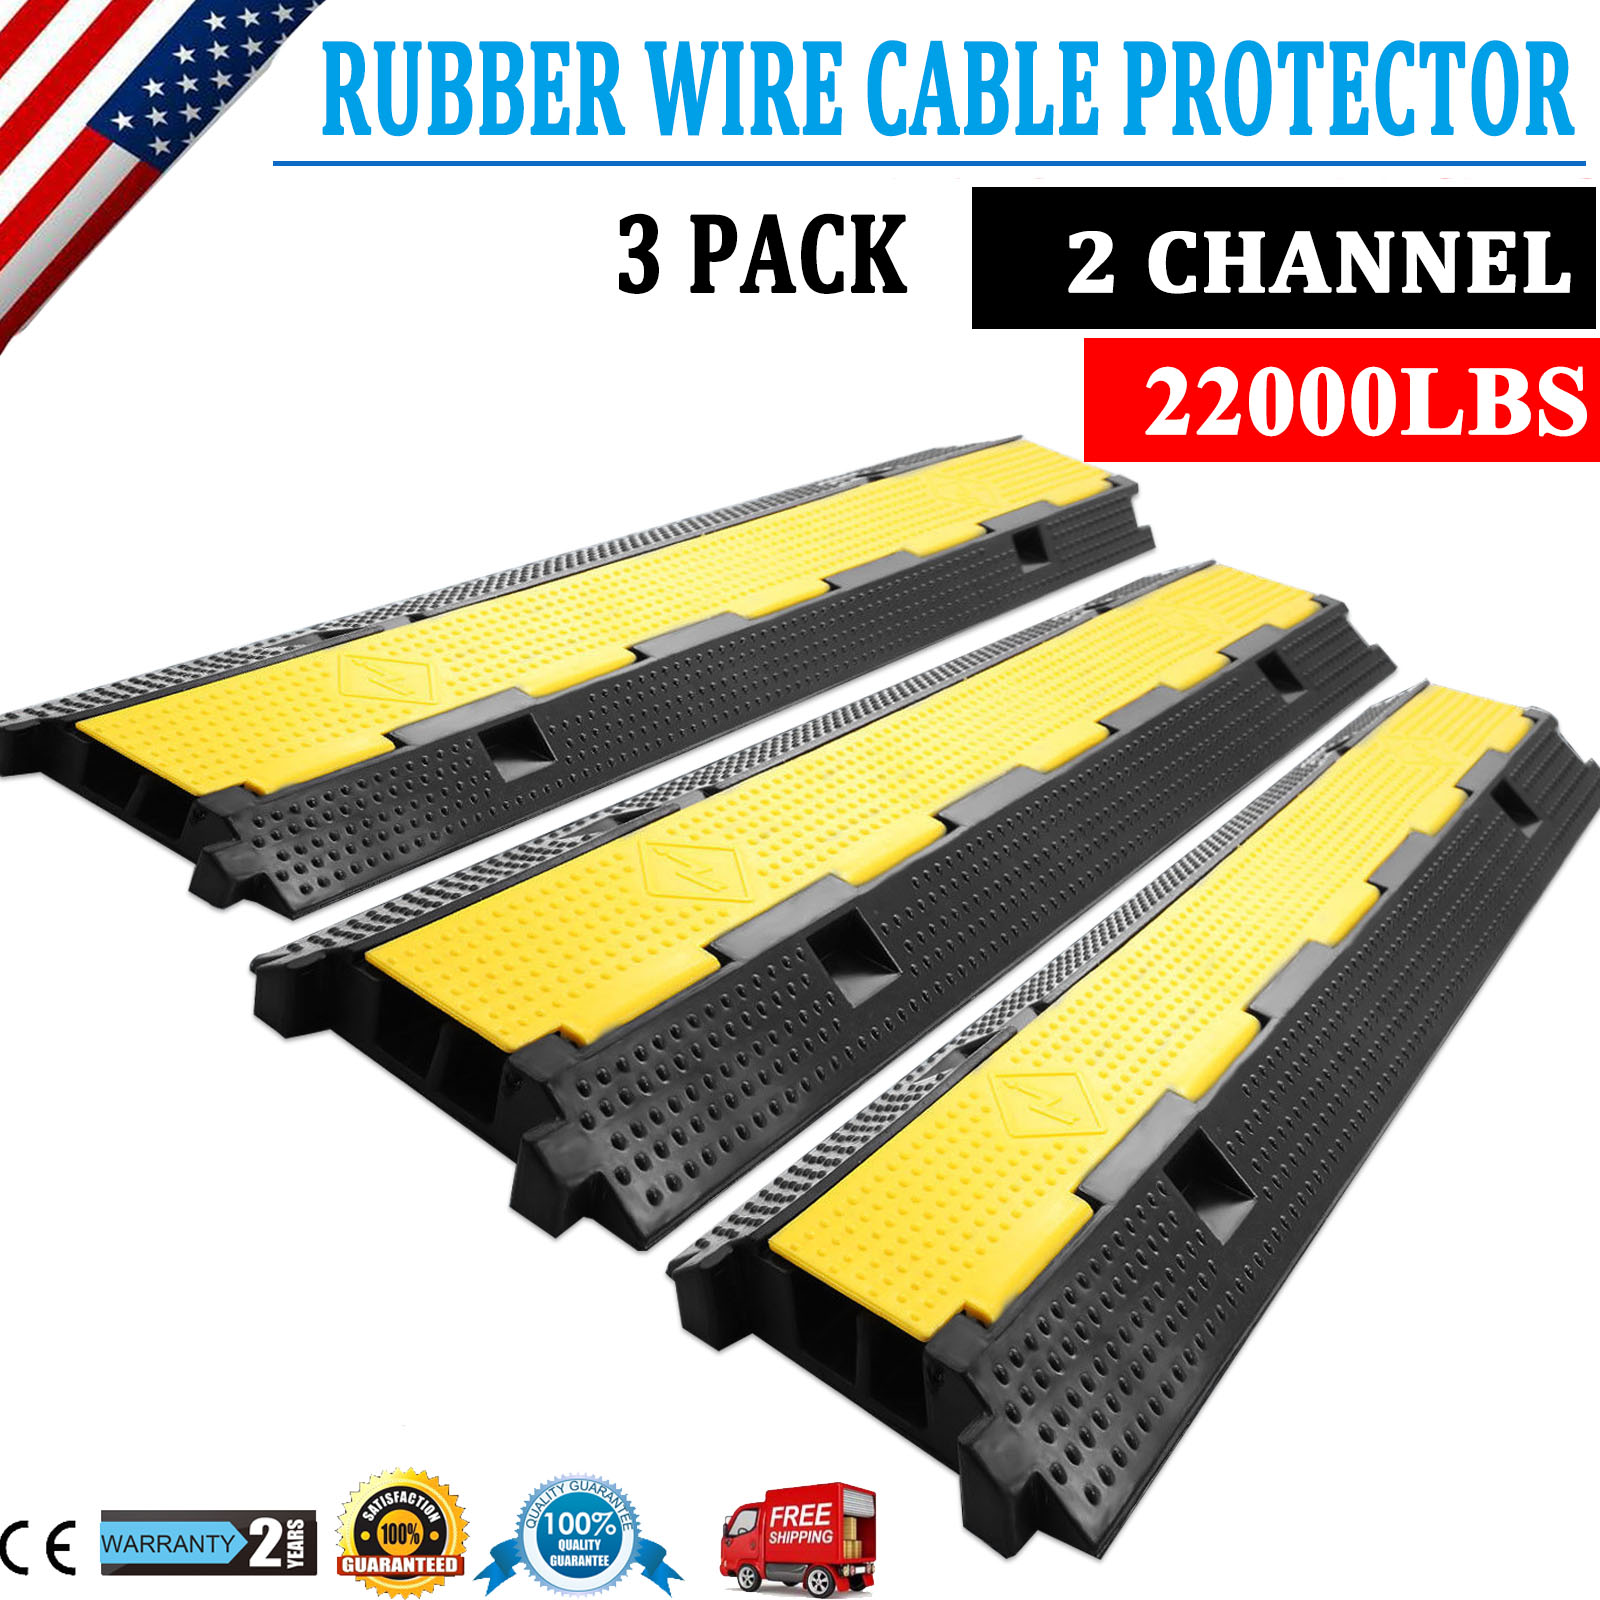 3Pcs 2 Channel Rubber Wire Cable Cover PVC Ramp Guard Warehouse Cord Protector